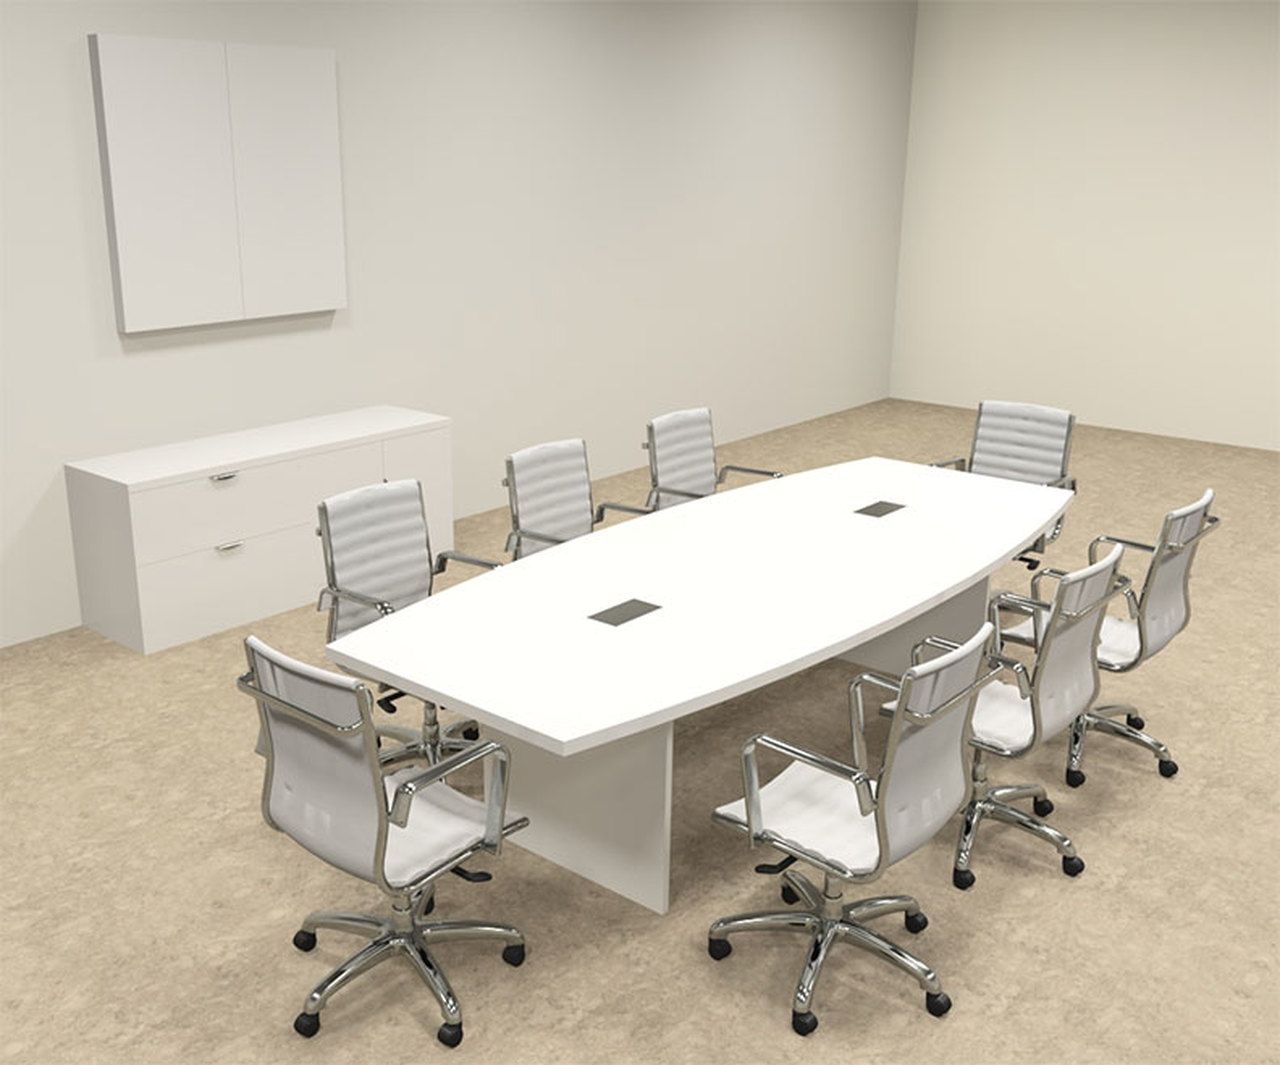 Modern Boat Shaped 10 Feet Conference Table Of Con C122 In 2020 Modern Conference Table Conference Table Office Furniture Design